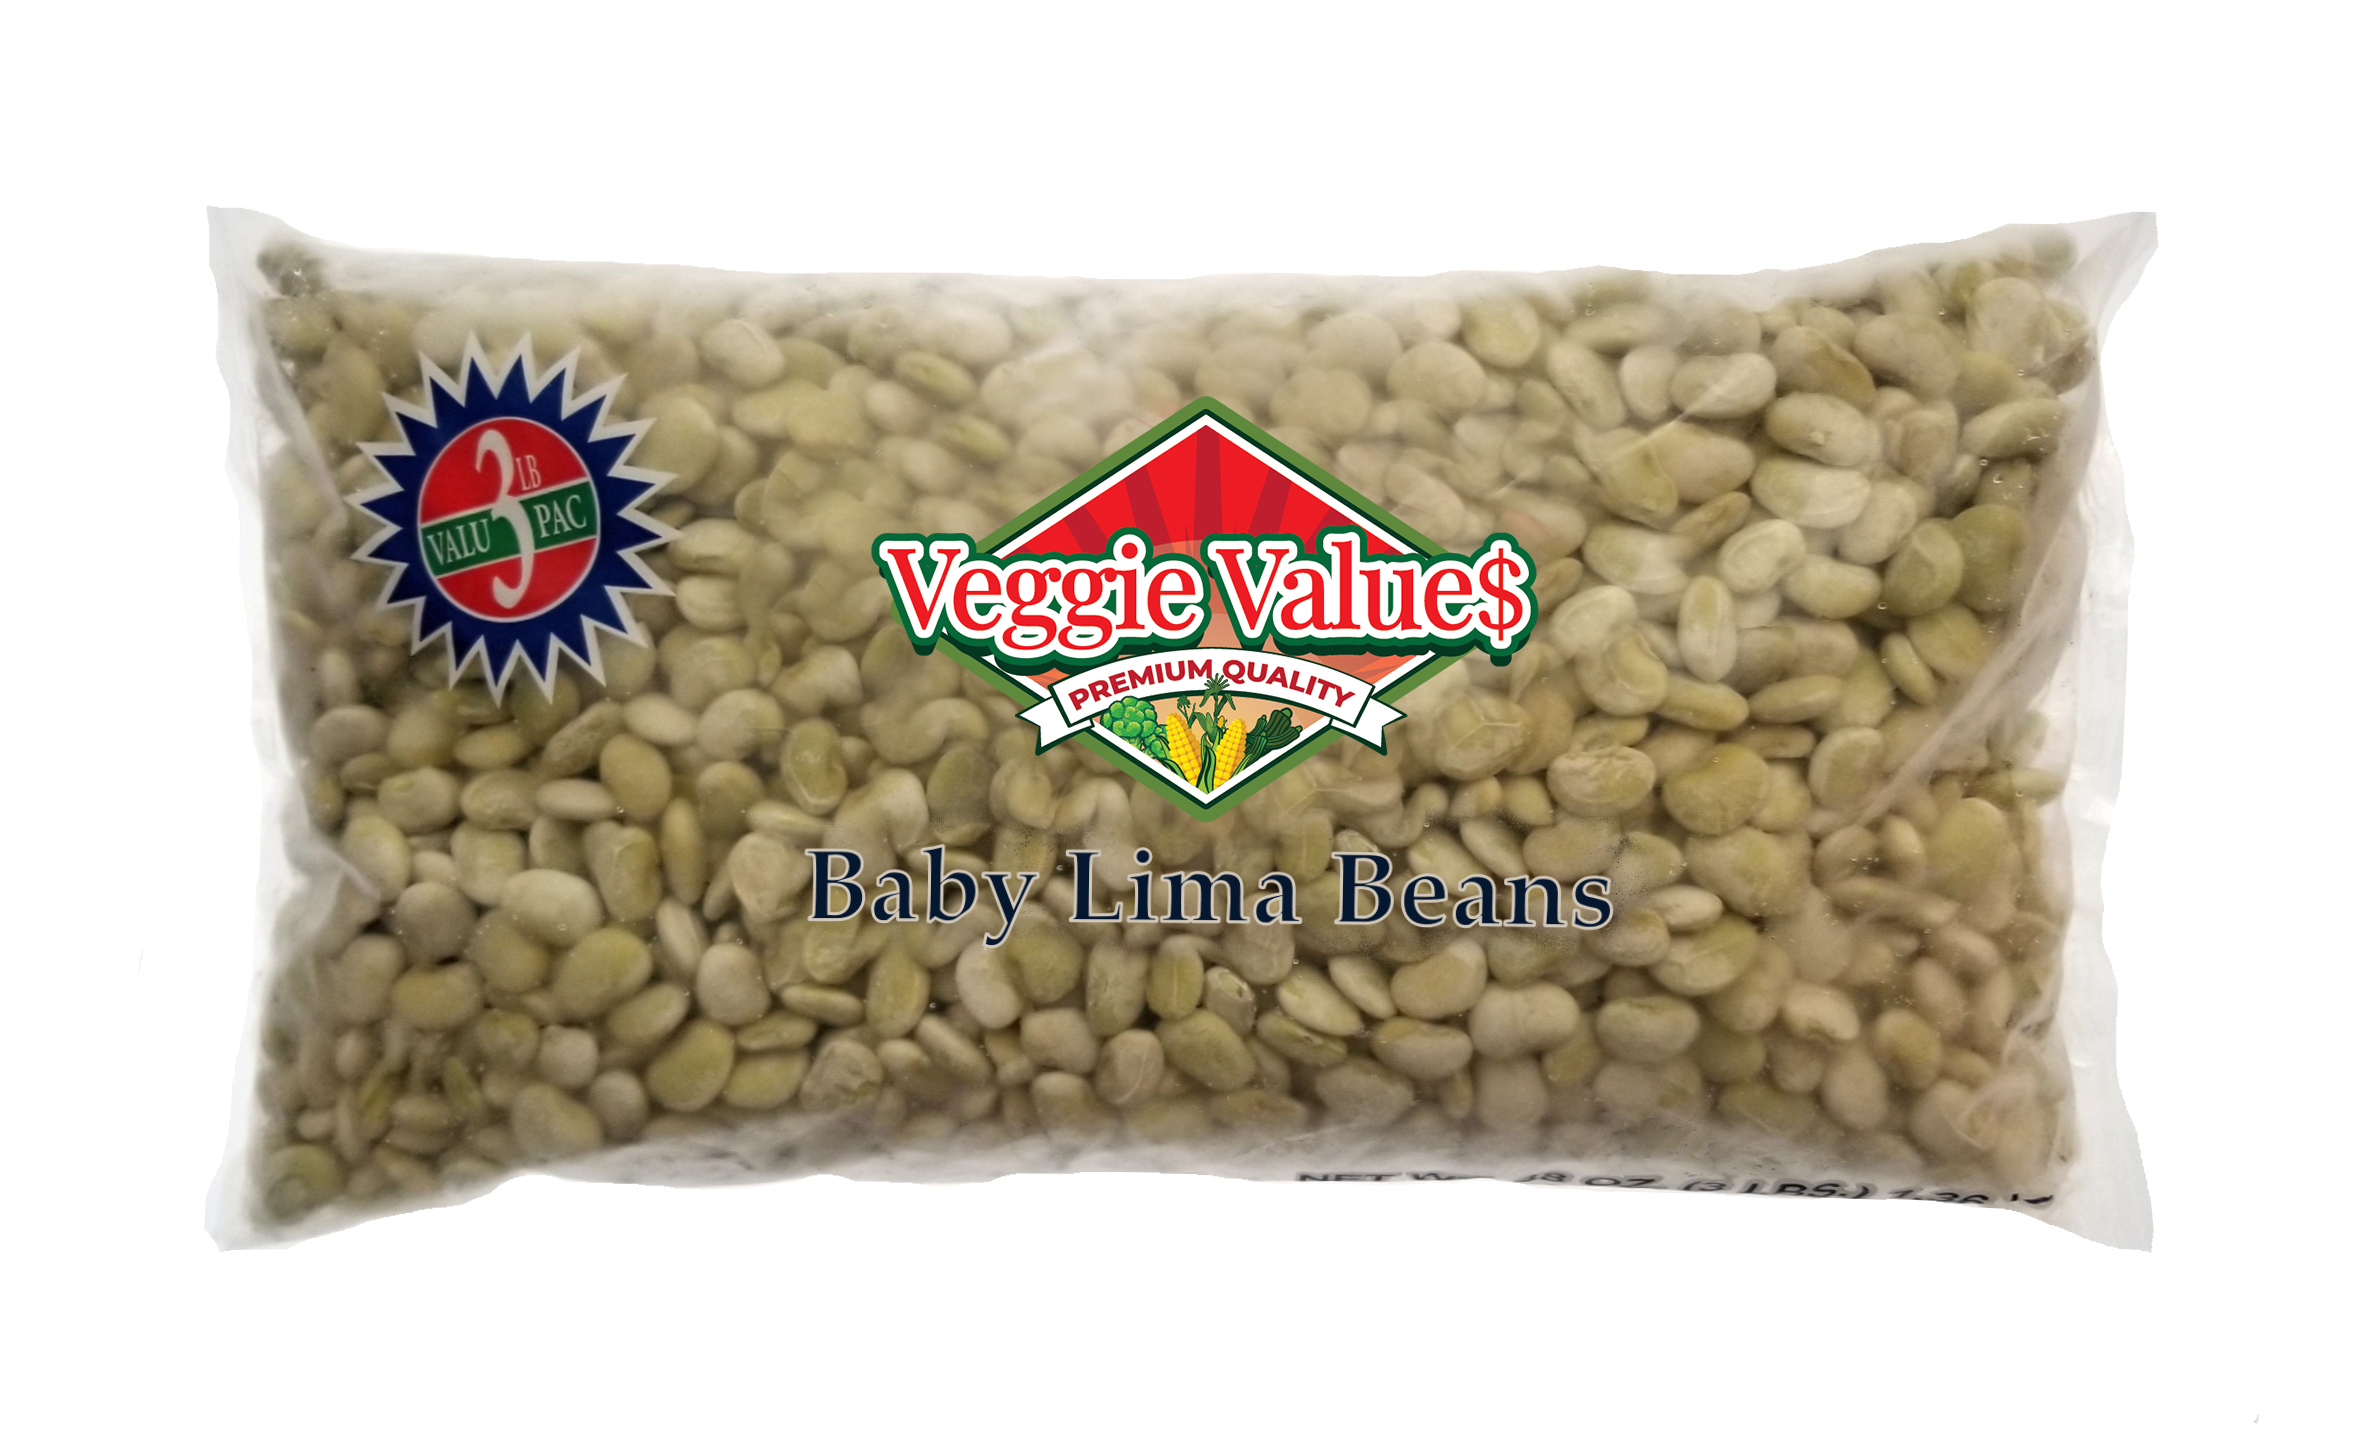 Image of Baby Lima Beans